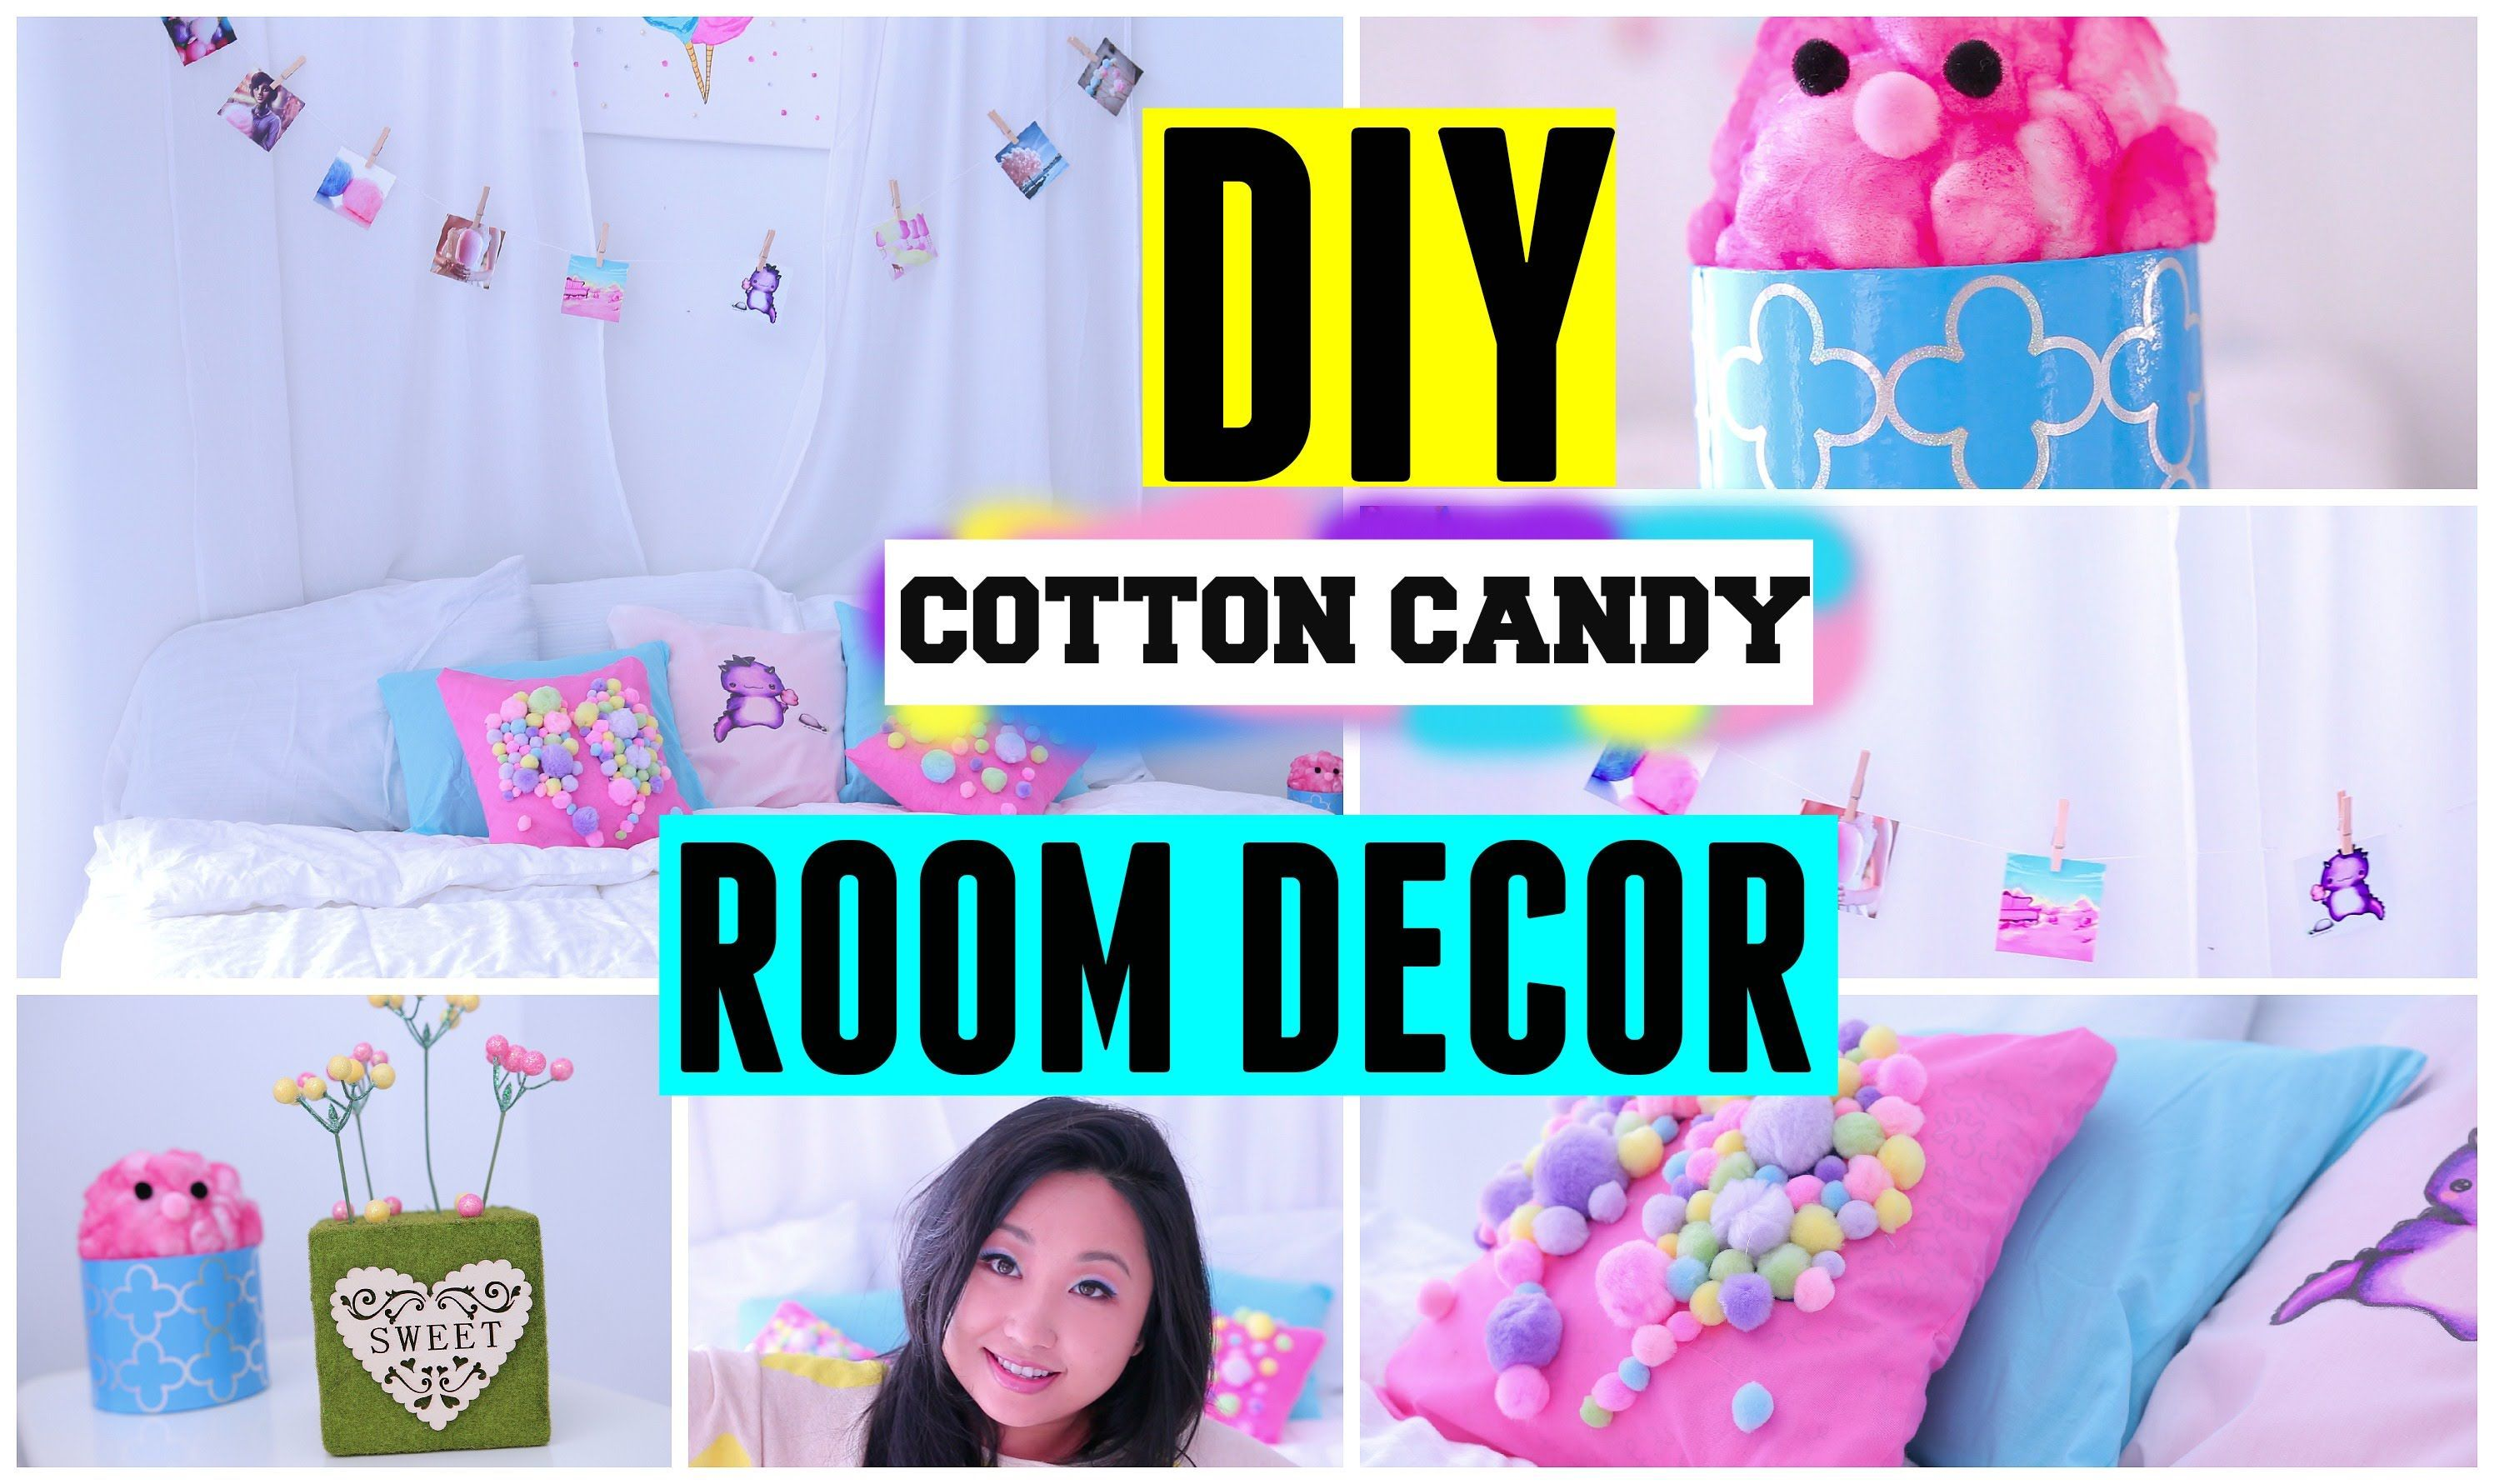 Diy spring cotton candy room decor ideas for teens cute easy cheap images